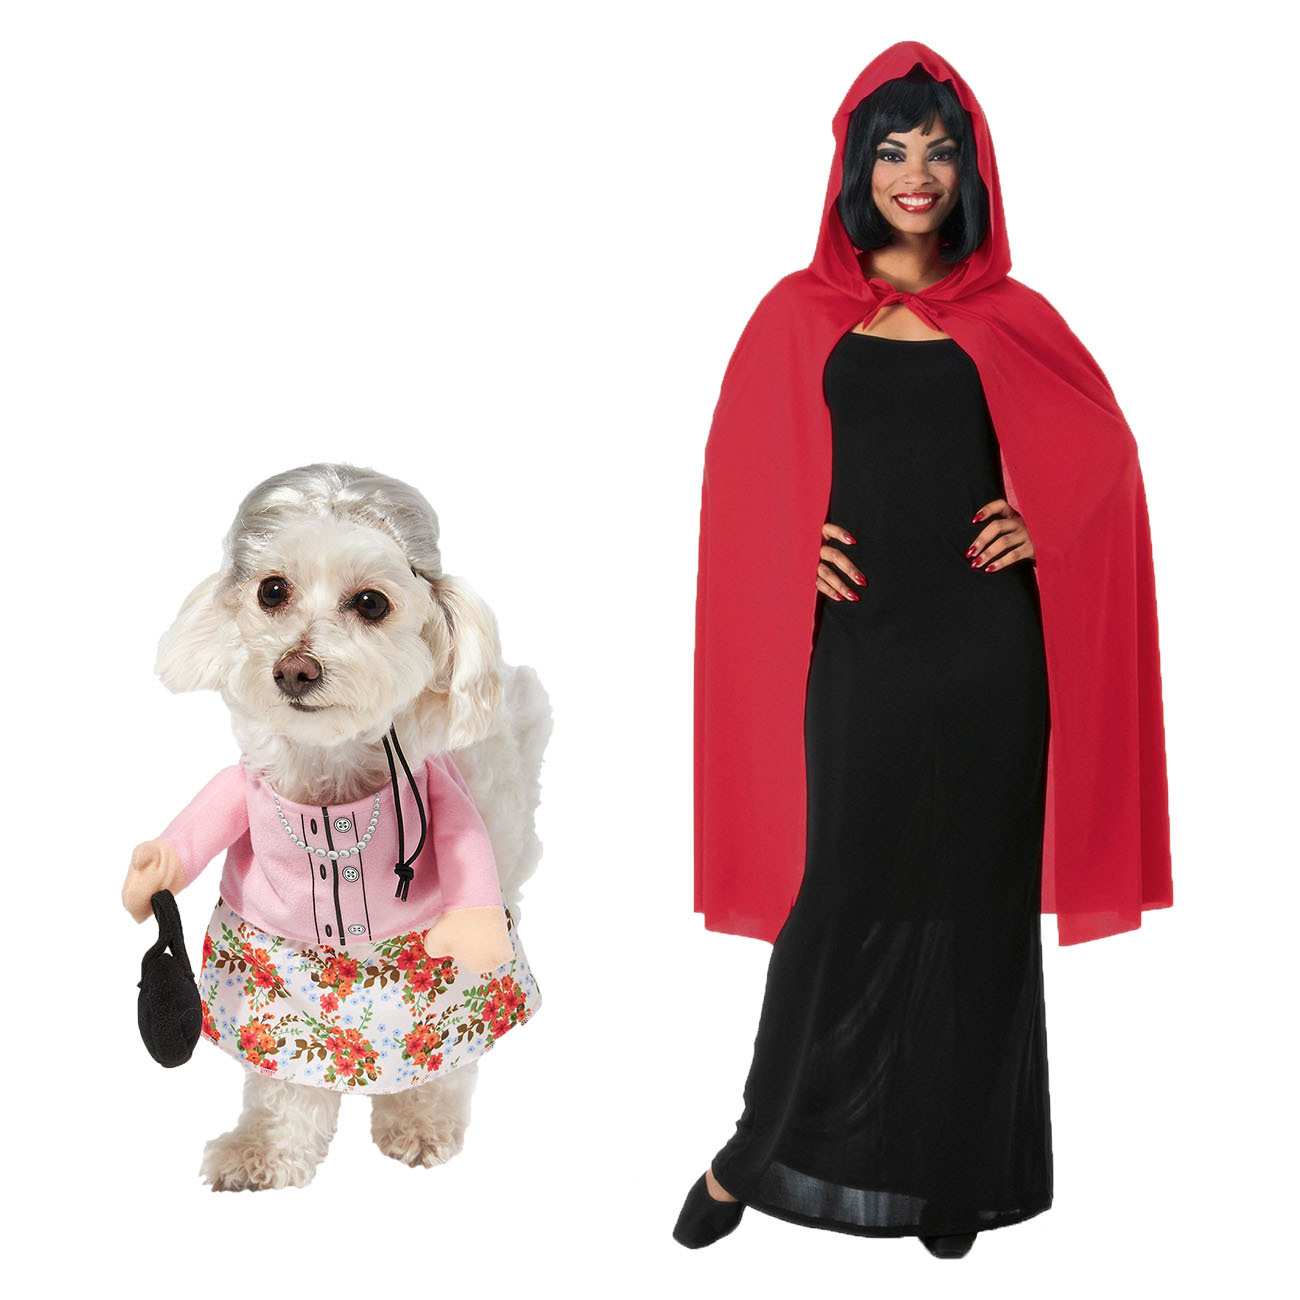 grandma pet Halloween costume and Little Red Riding Hood cape costume for people